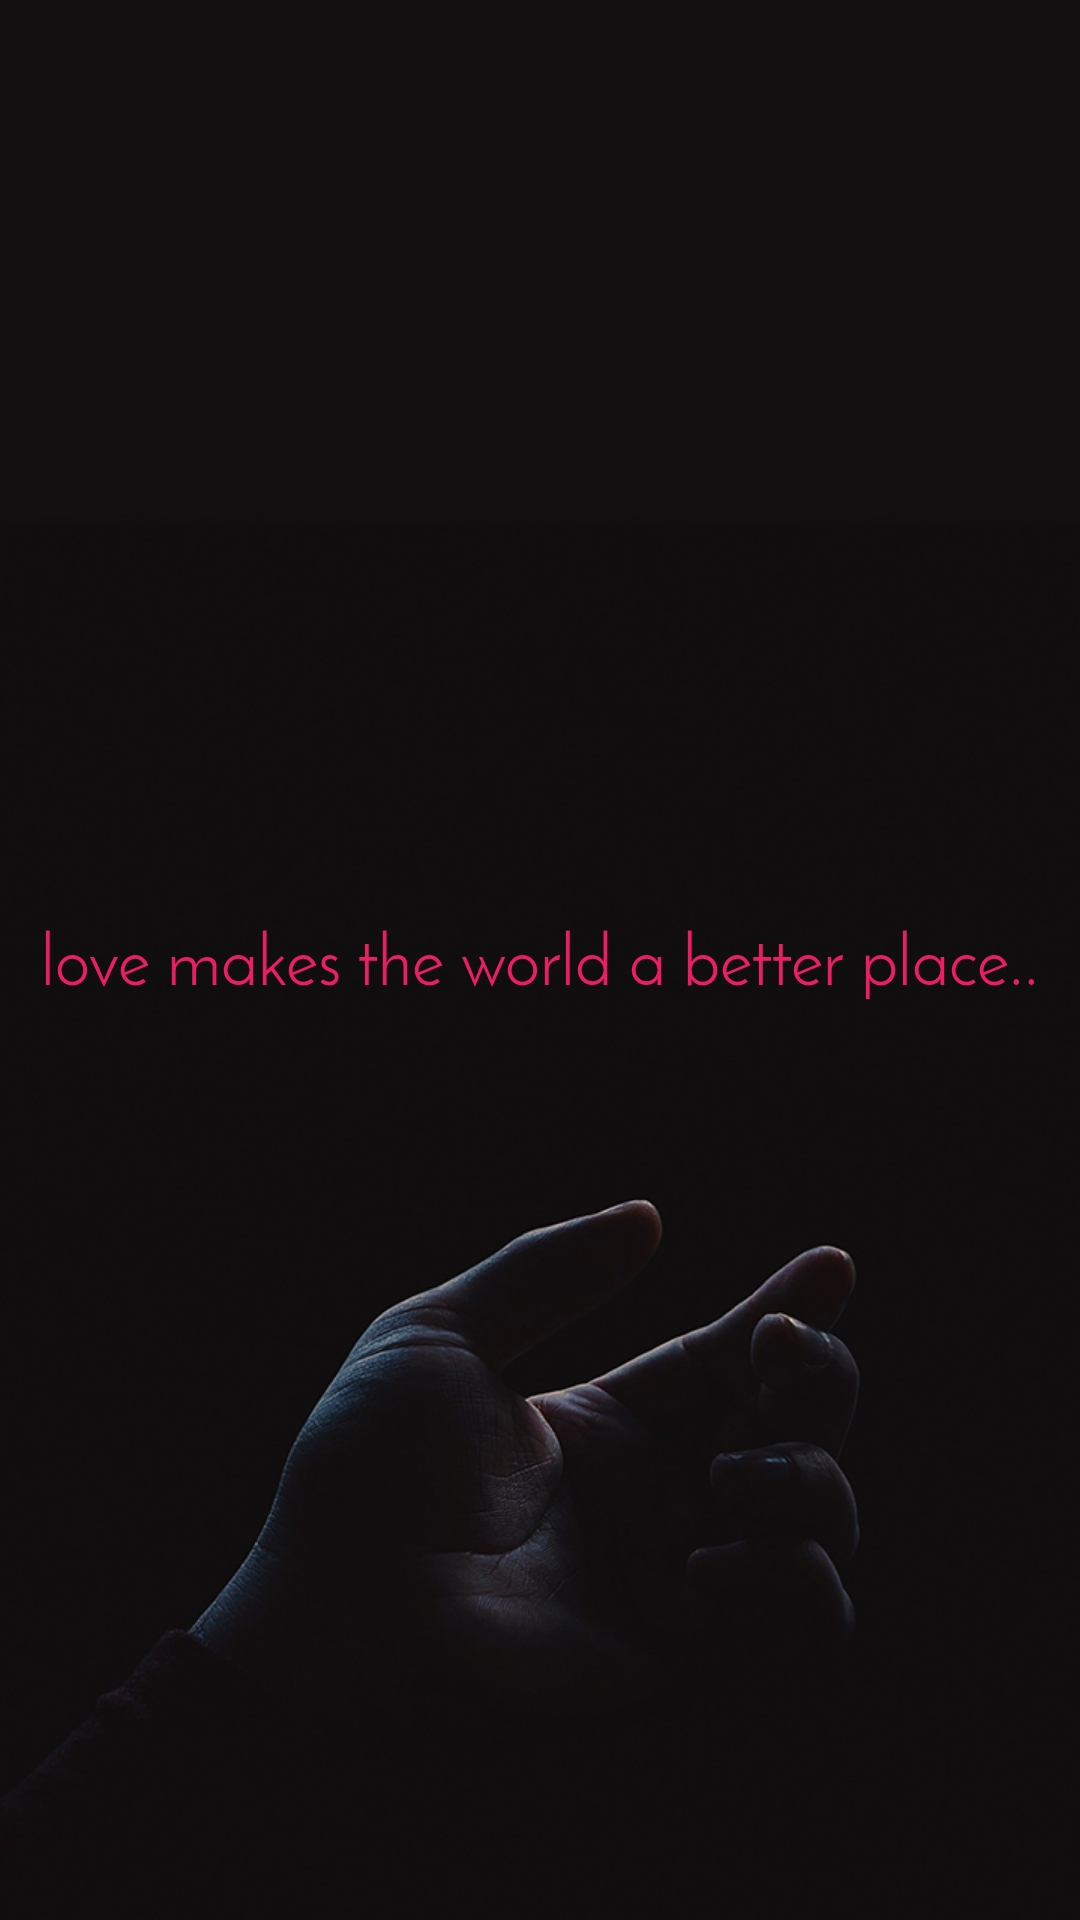 love makes the world a better place..